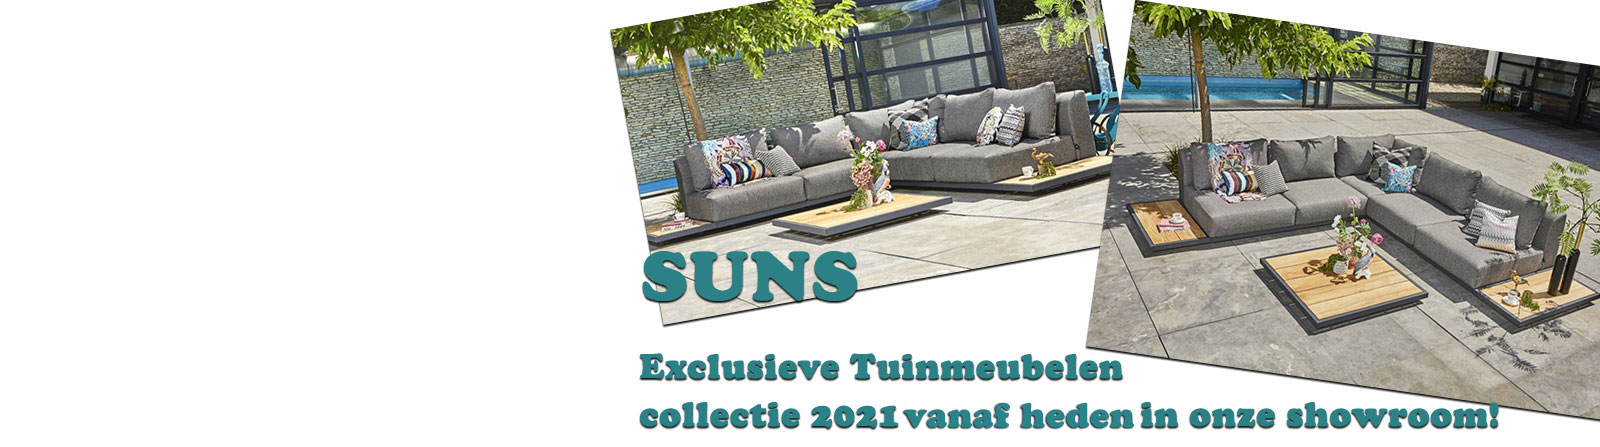 SUNS exclusief